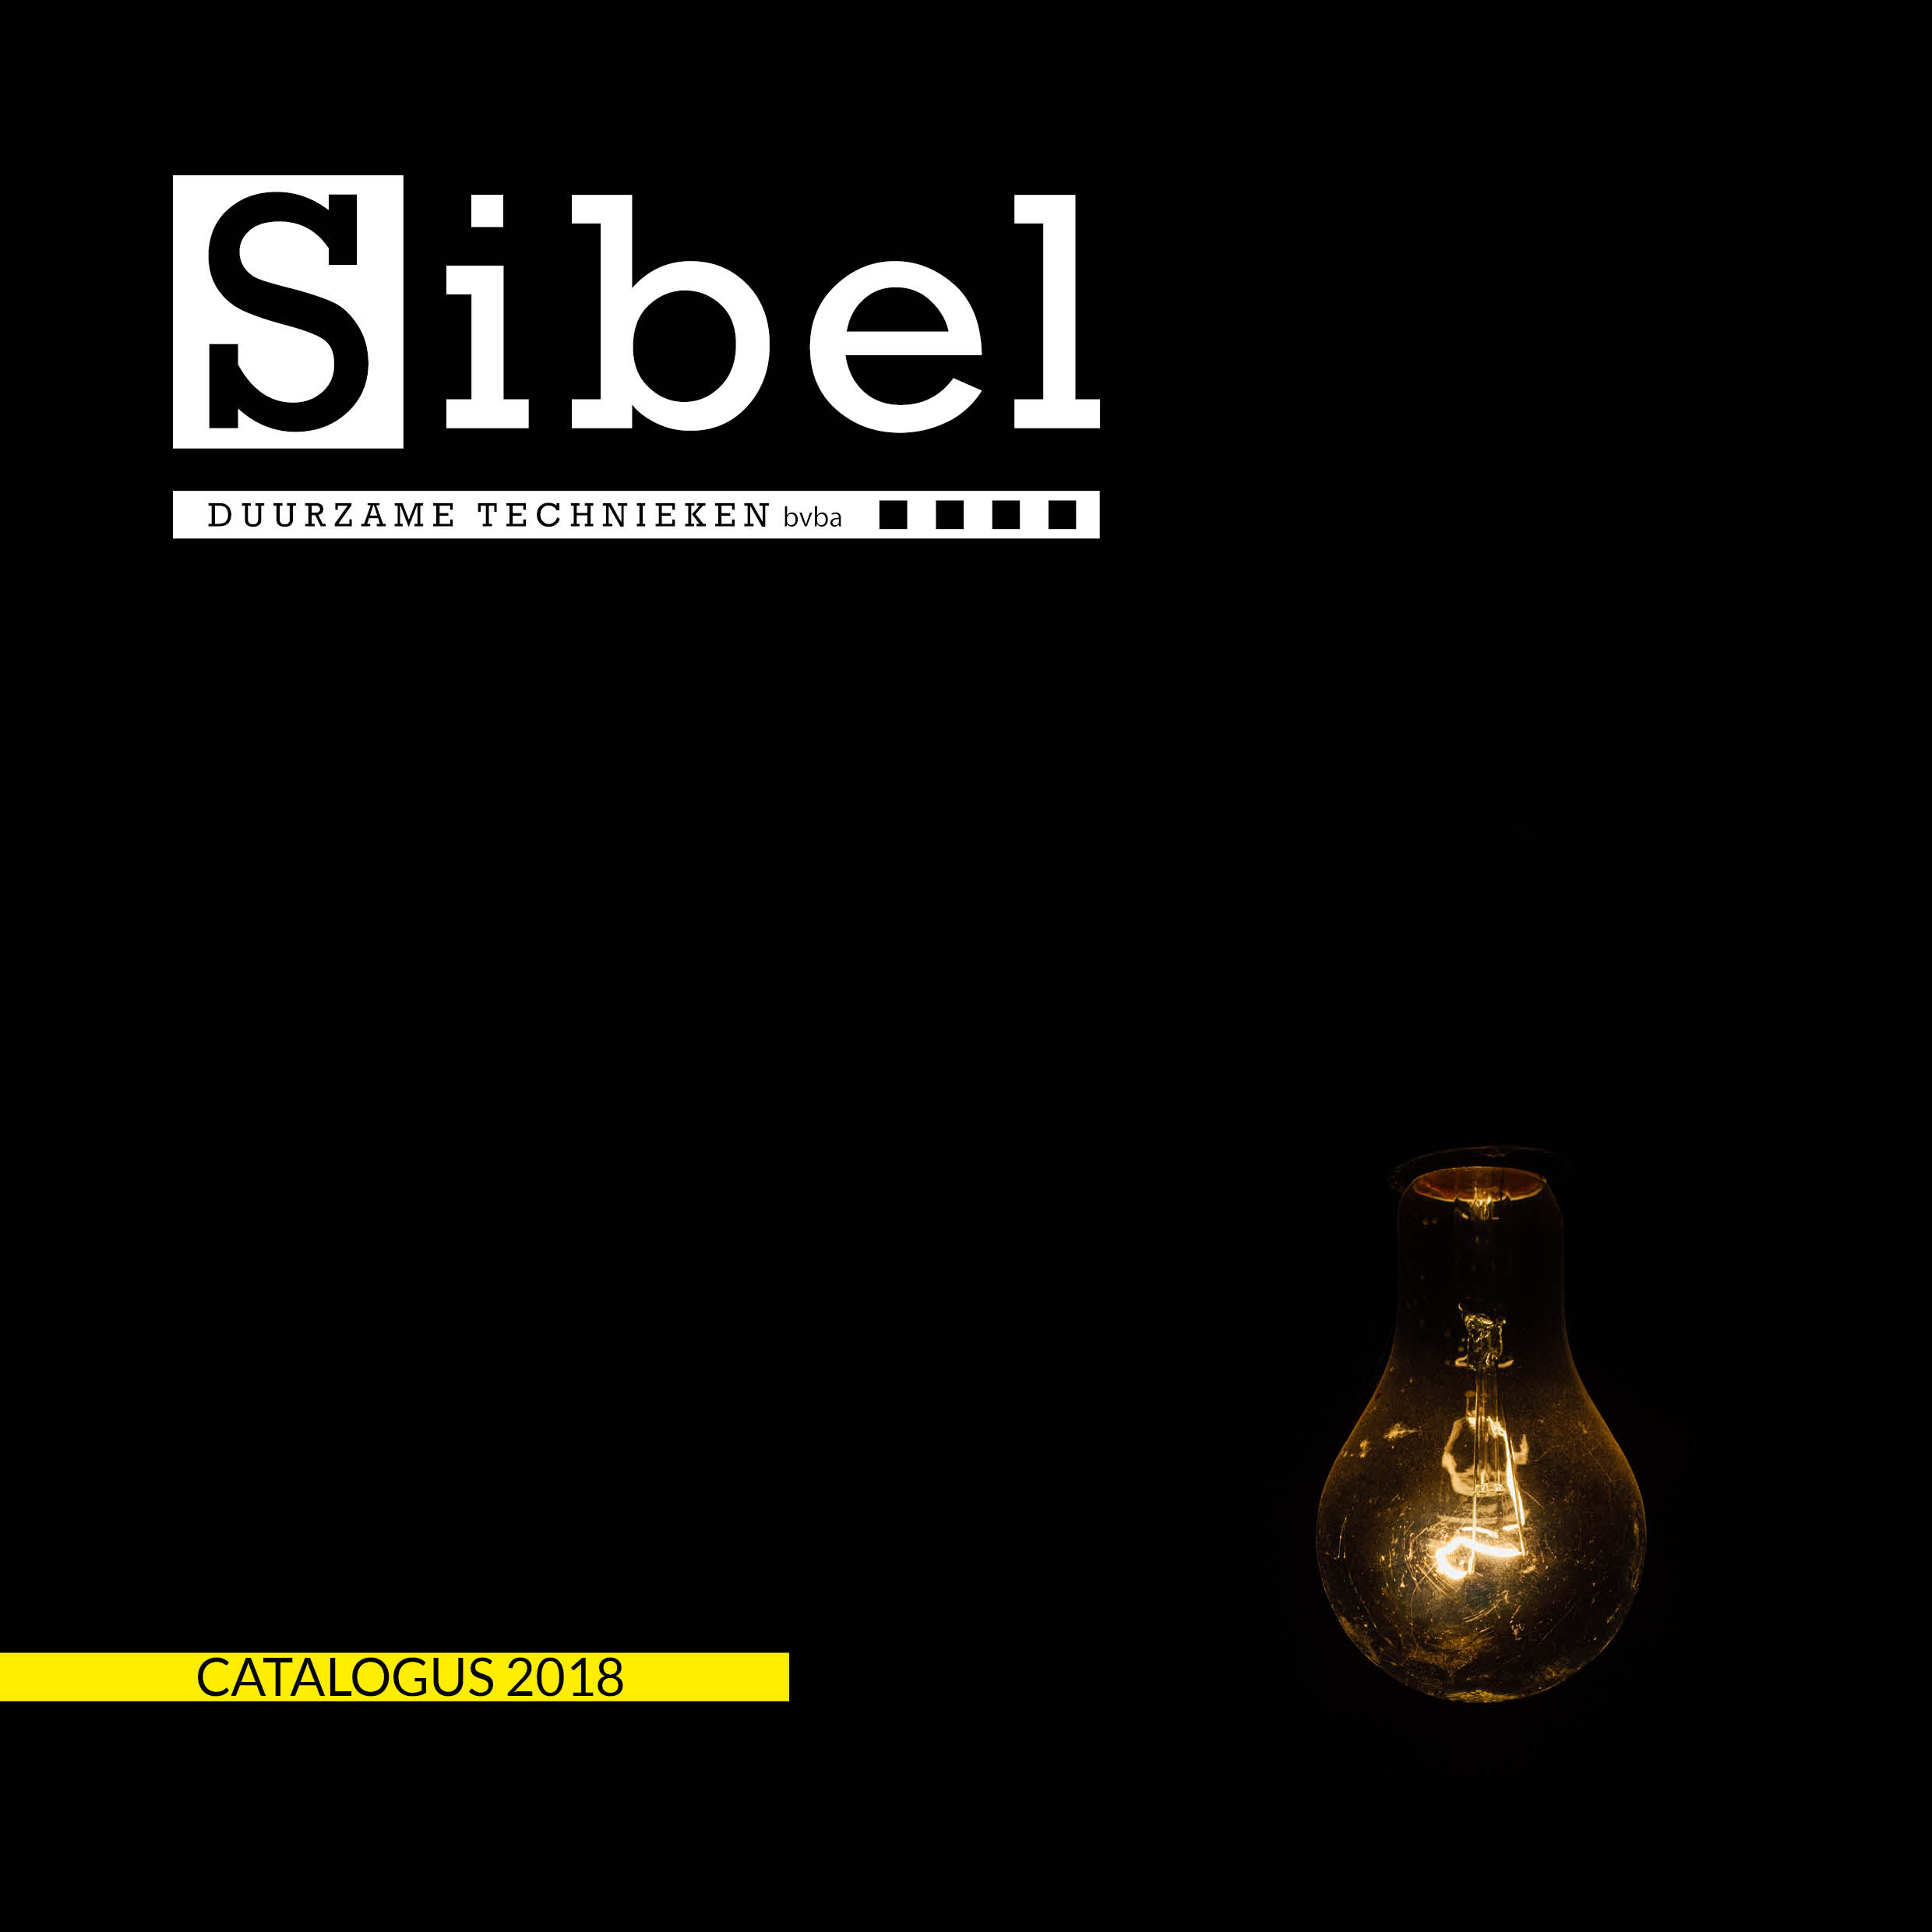 Sibel Lighting technical datasheets